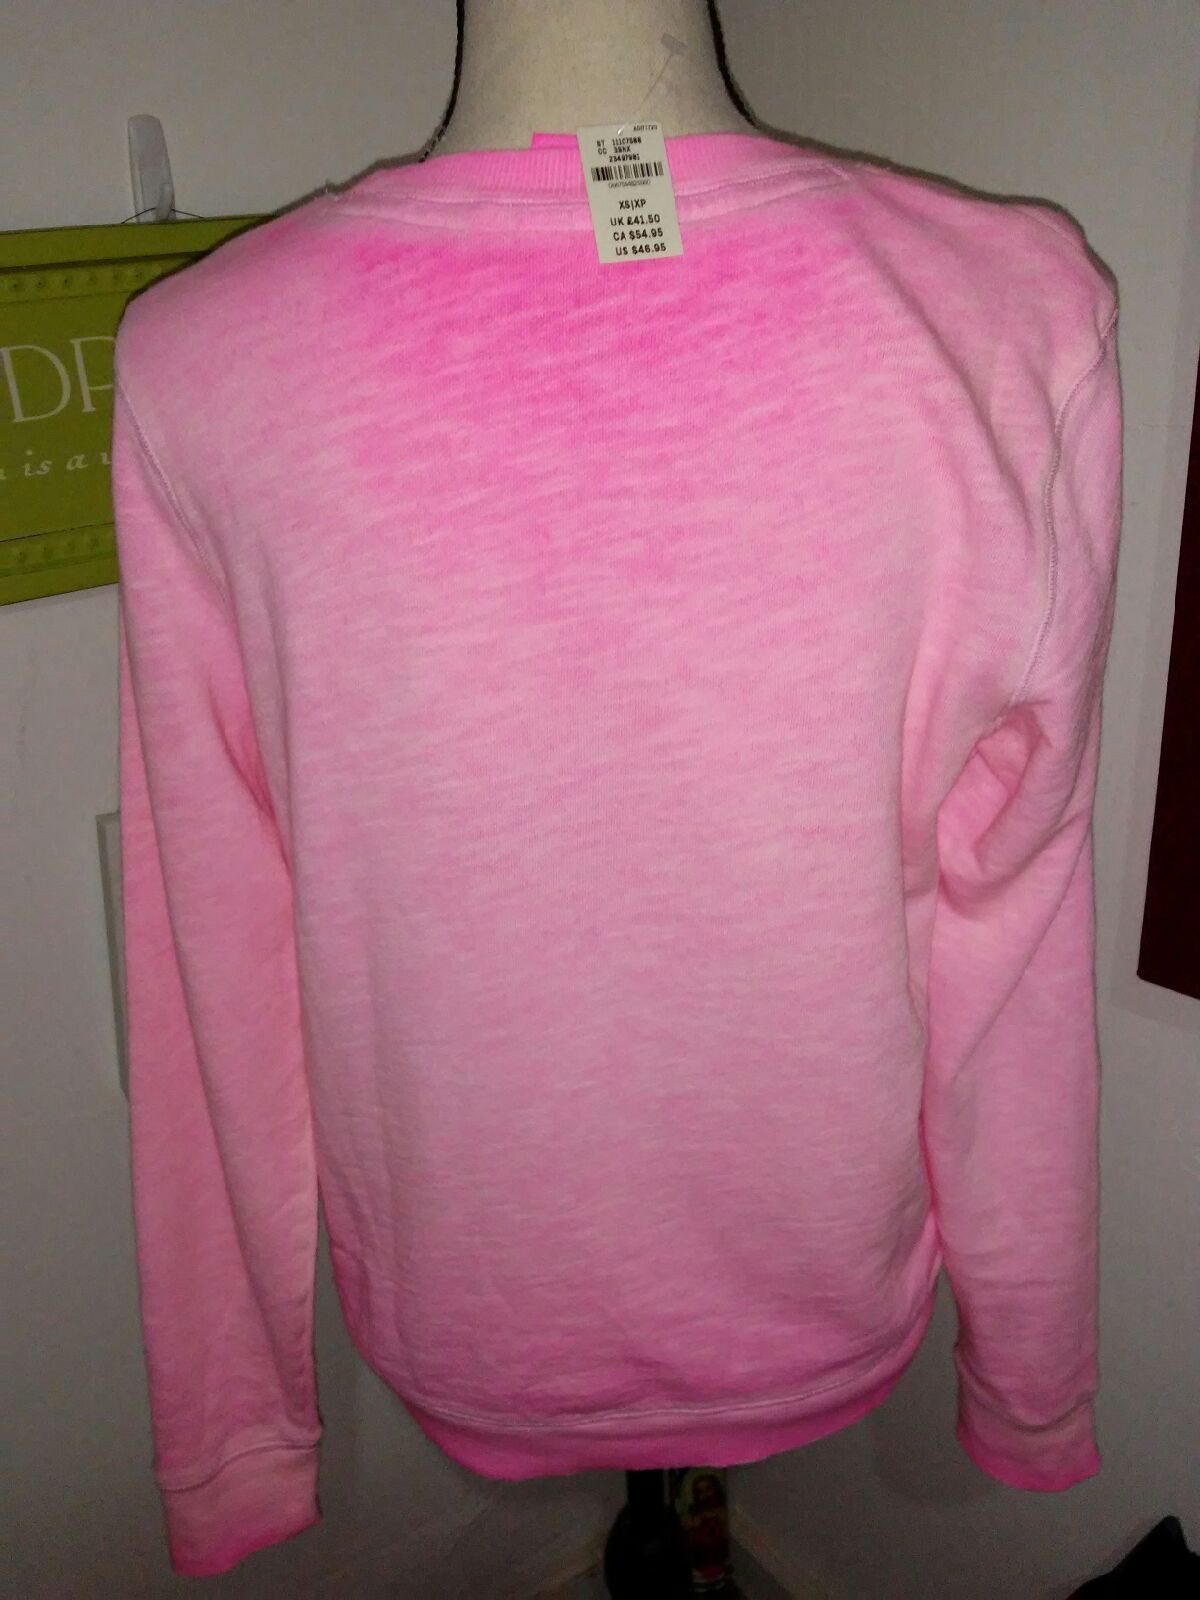 VS PINK CREWNECK SWEATSHIRT SIZE XS - Mercari: BUY & SELL THINGS ...